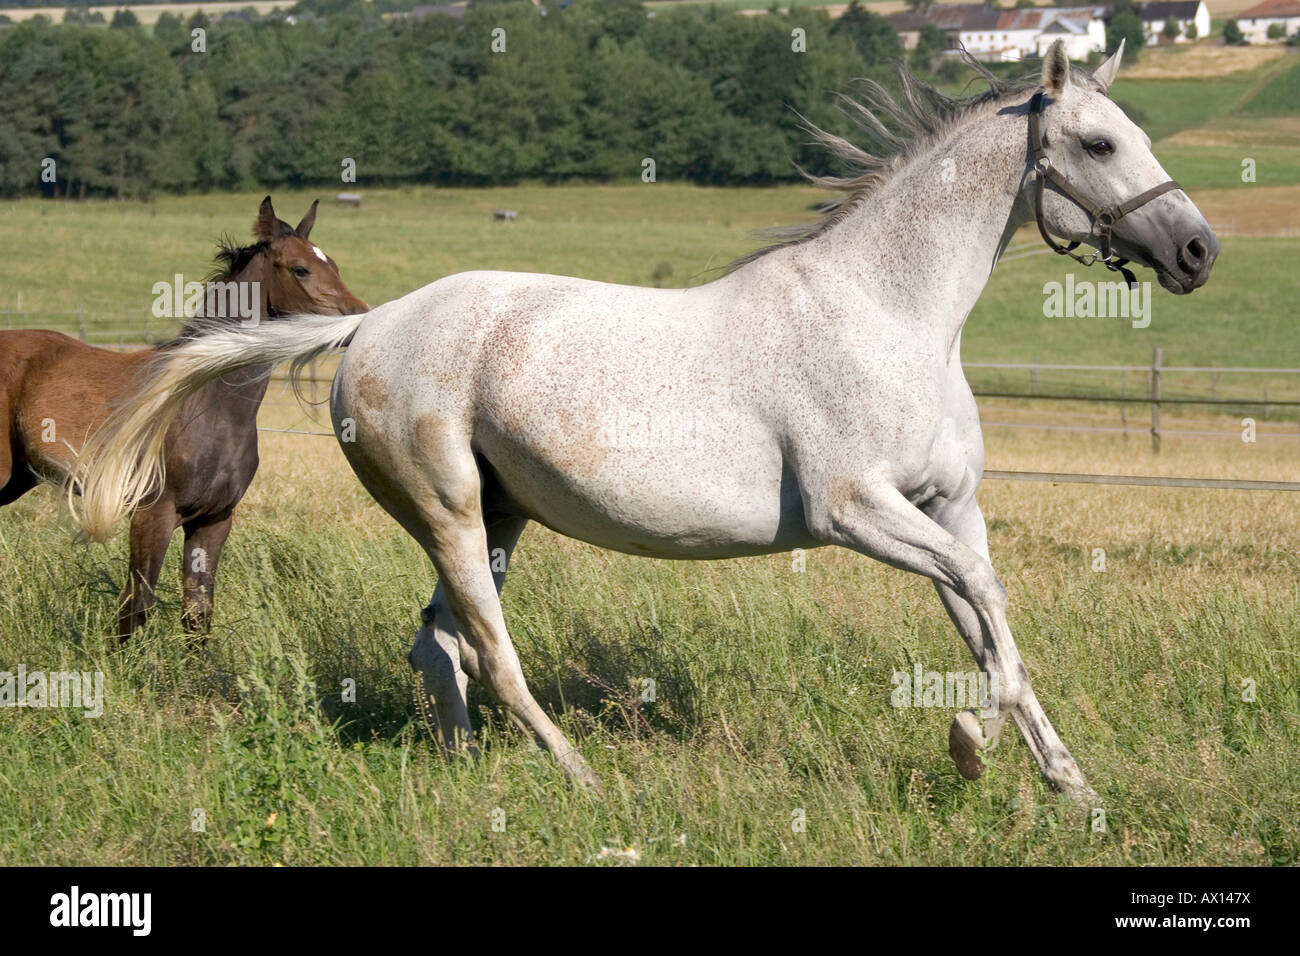 Oldenburg mare, white, galloping through meadow, brown foal behind her in Vulkaneifel, Germany, Europe - Stock Image